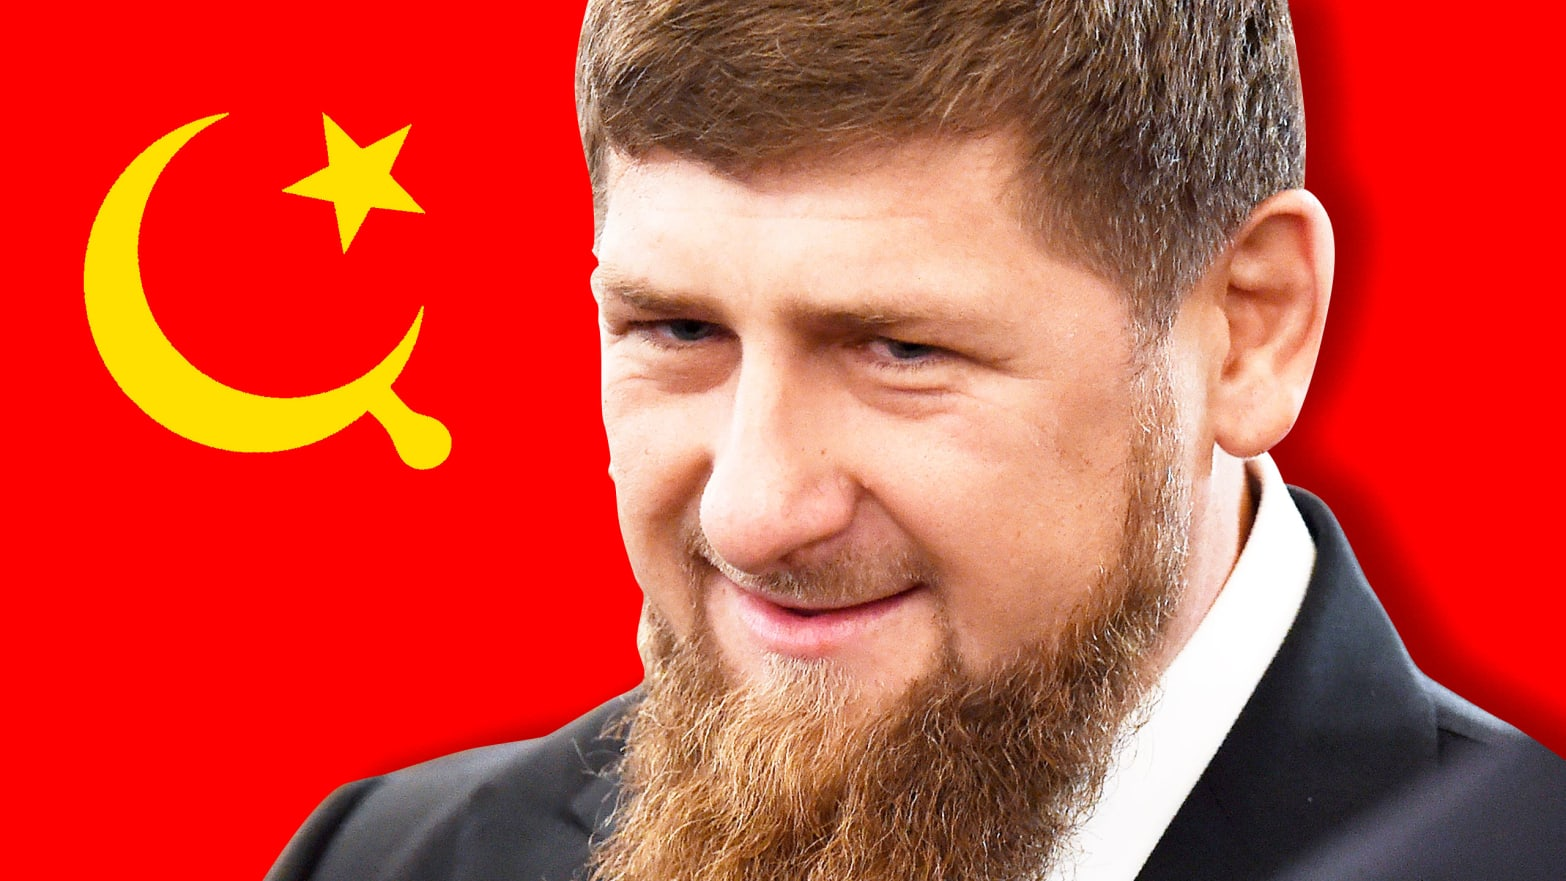 Chechen Ramzan Kadyrov makes a power play, pushing Putin to intervene in Burma. But that's only the beginning.